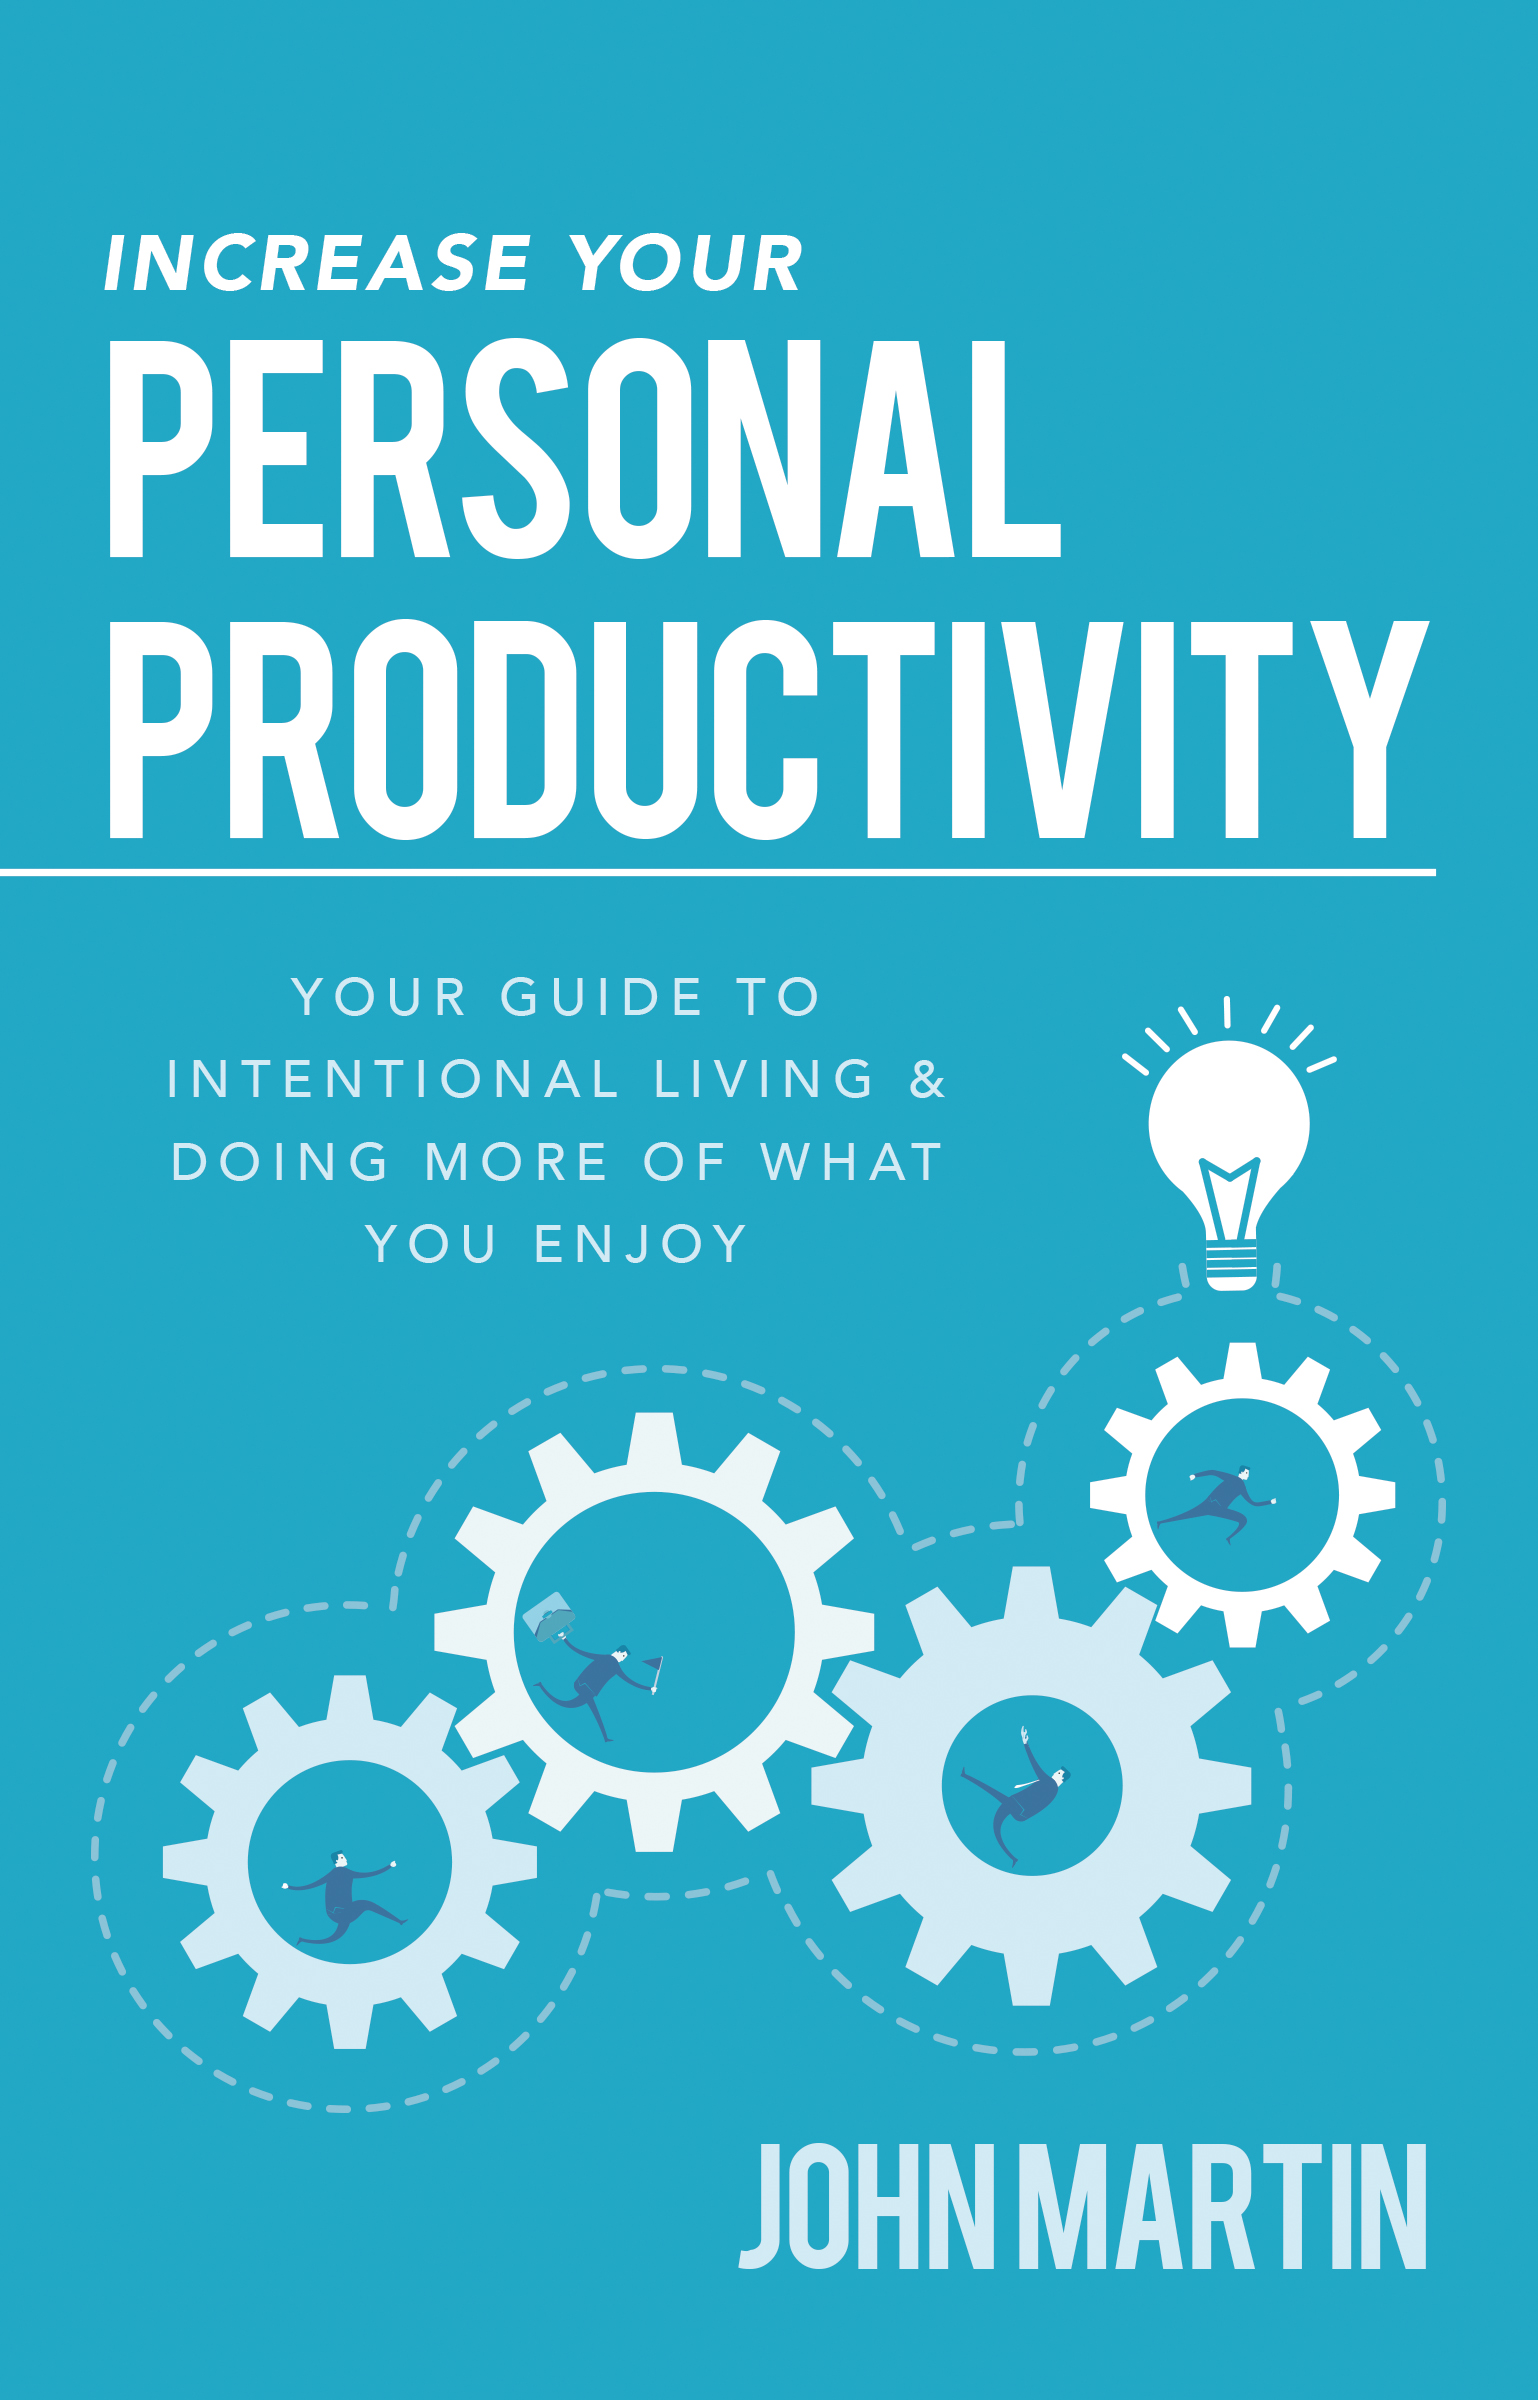 Increase Your Personal Productivity - John Martin